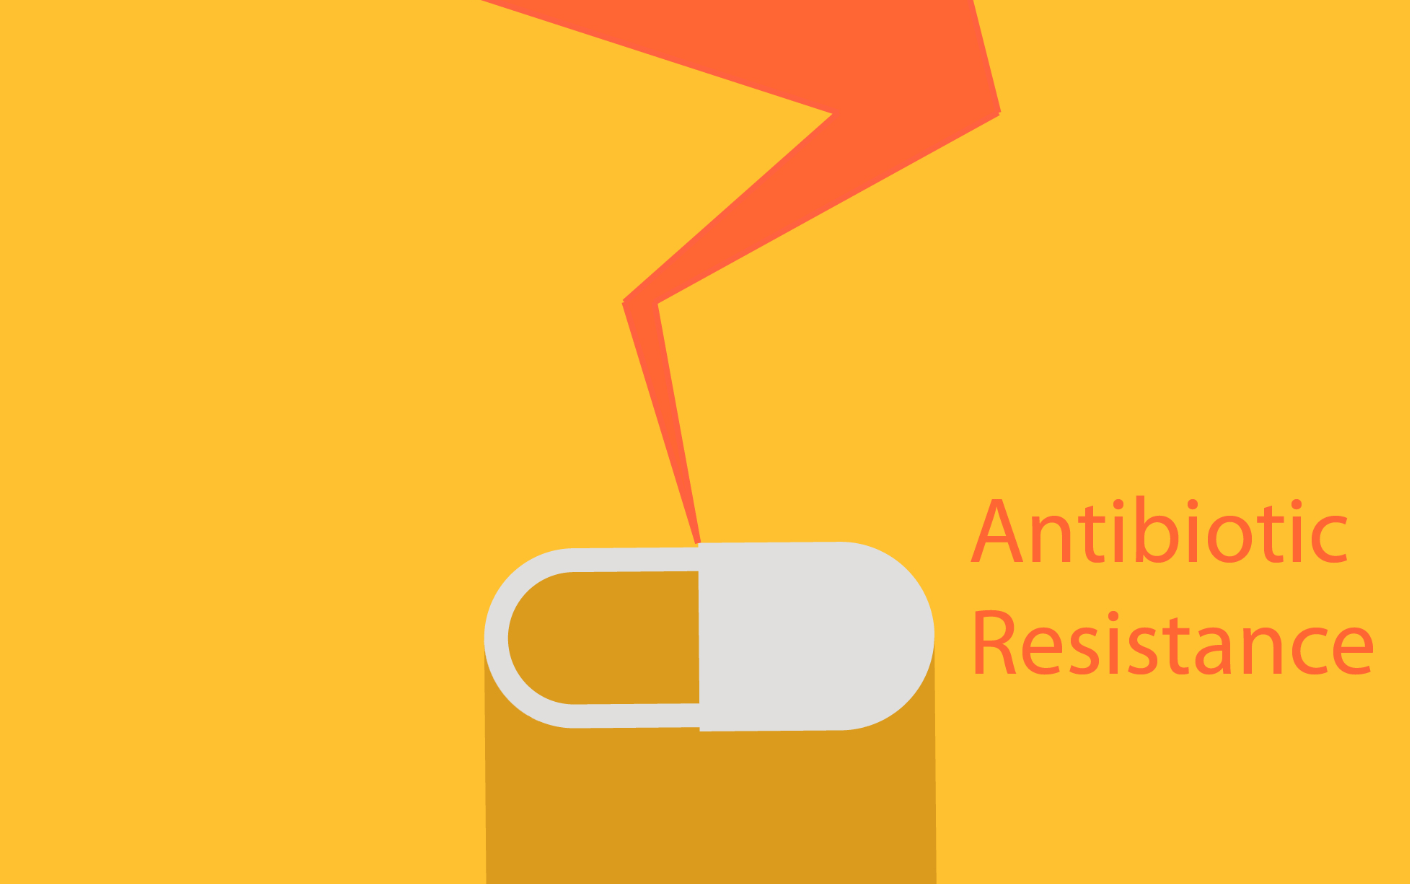 White House Joins Other World Leaders in Fight Against Antibiotic-Resistant Bacteria